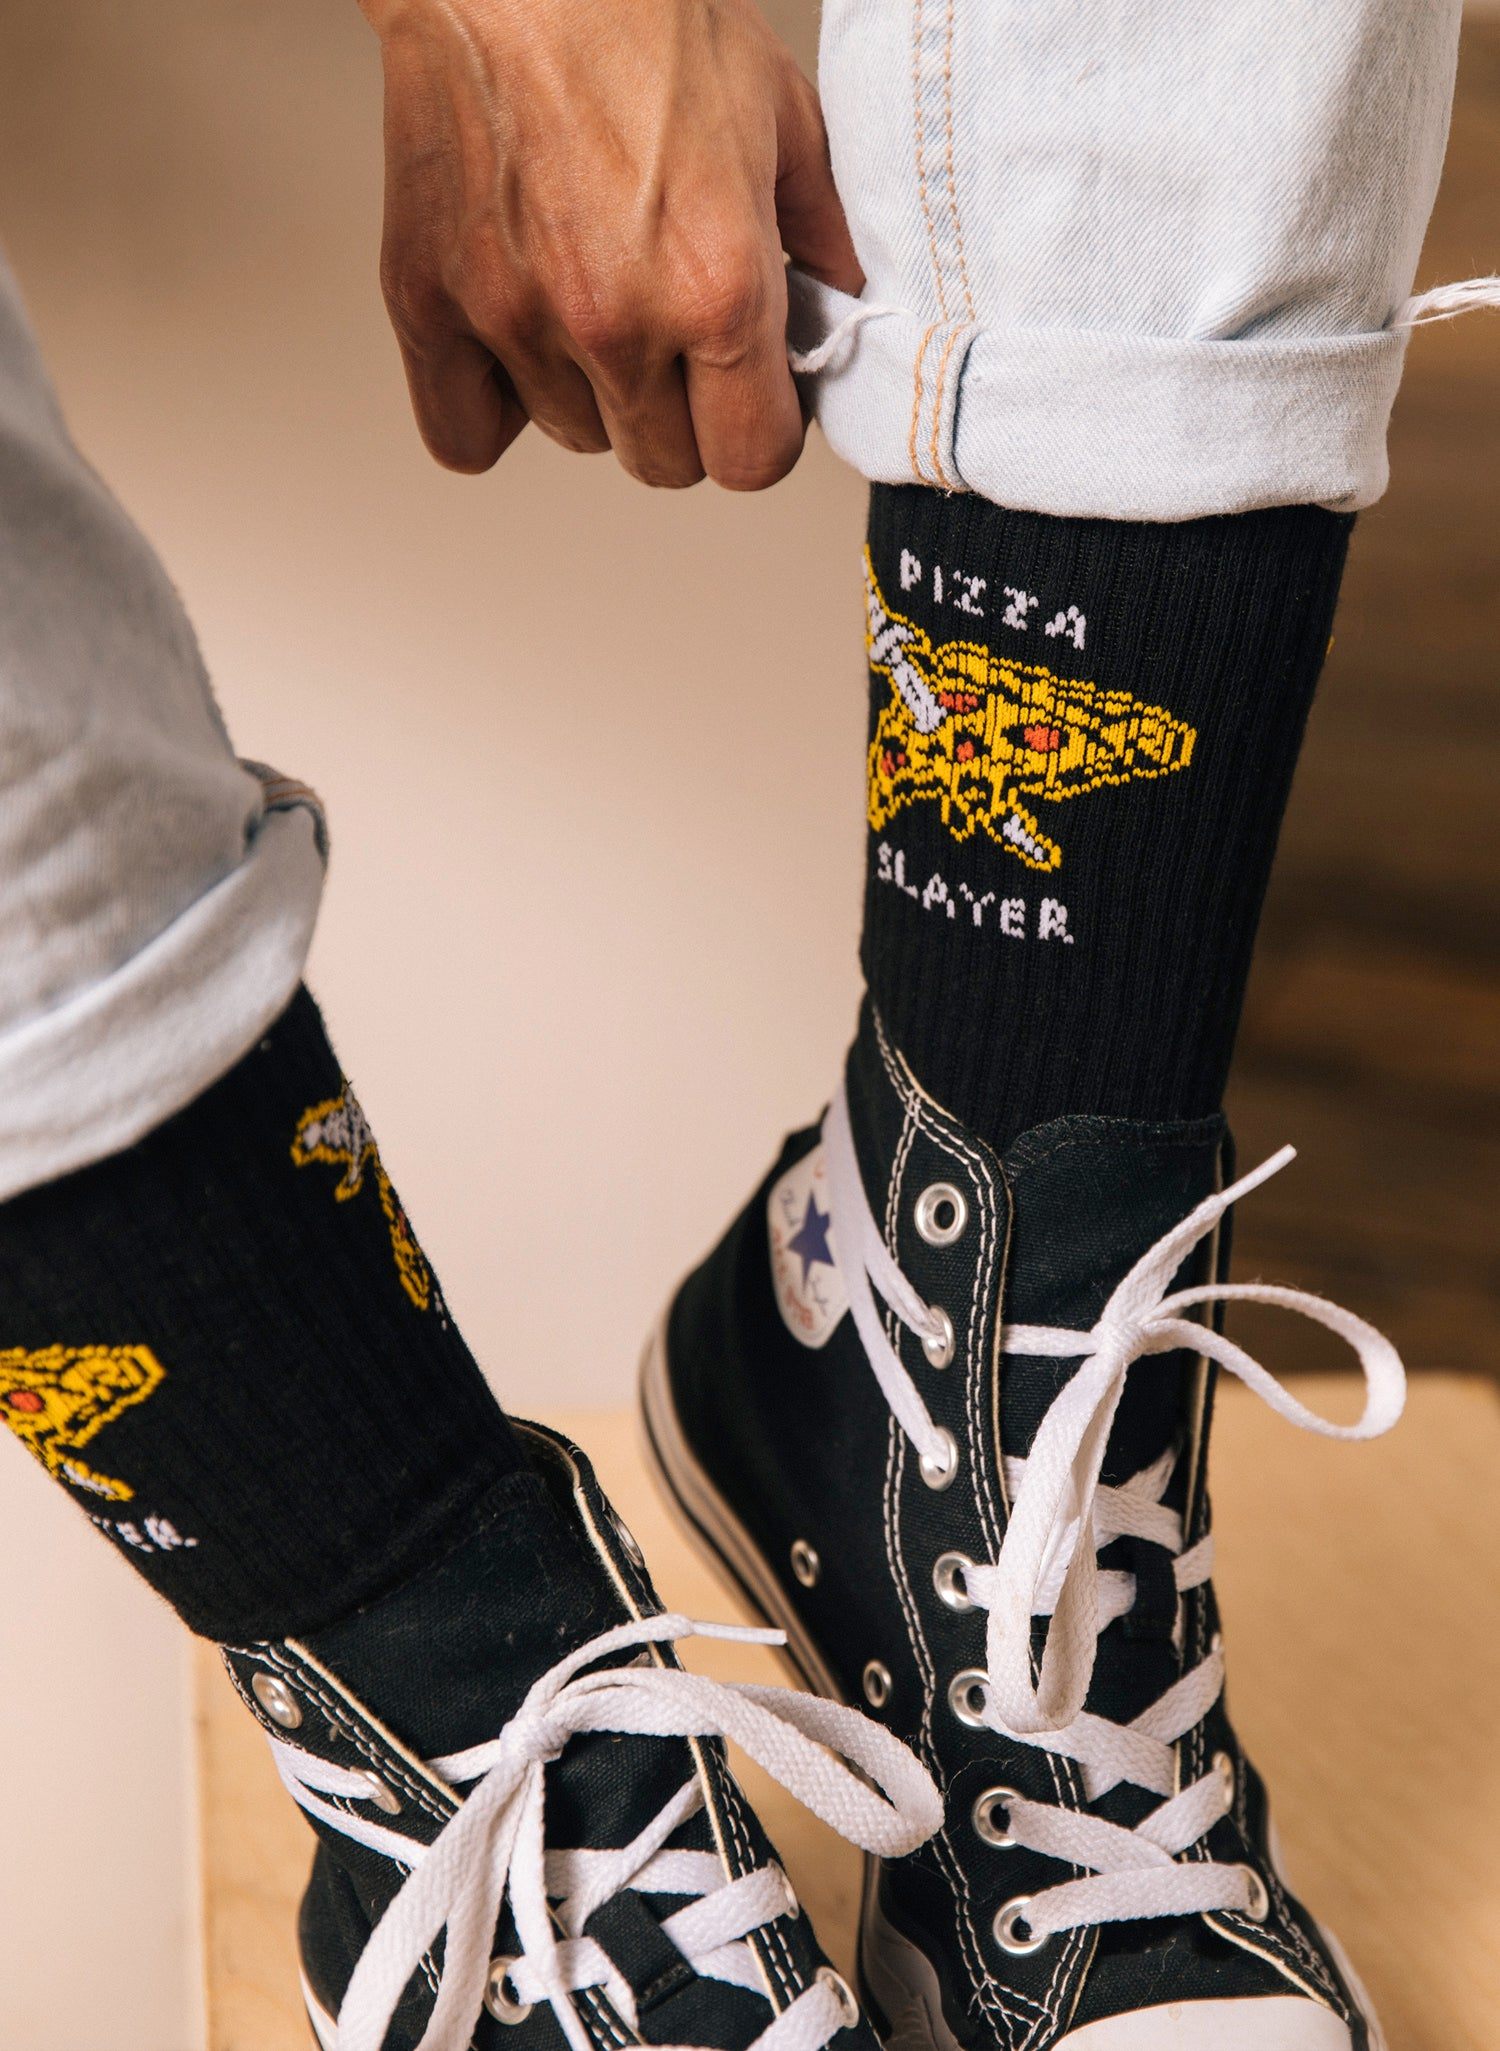 Pizza Slayer Pizzeria Slice Funny Food Foodie Socks